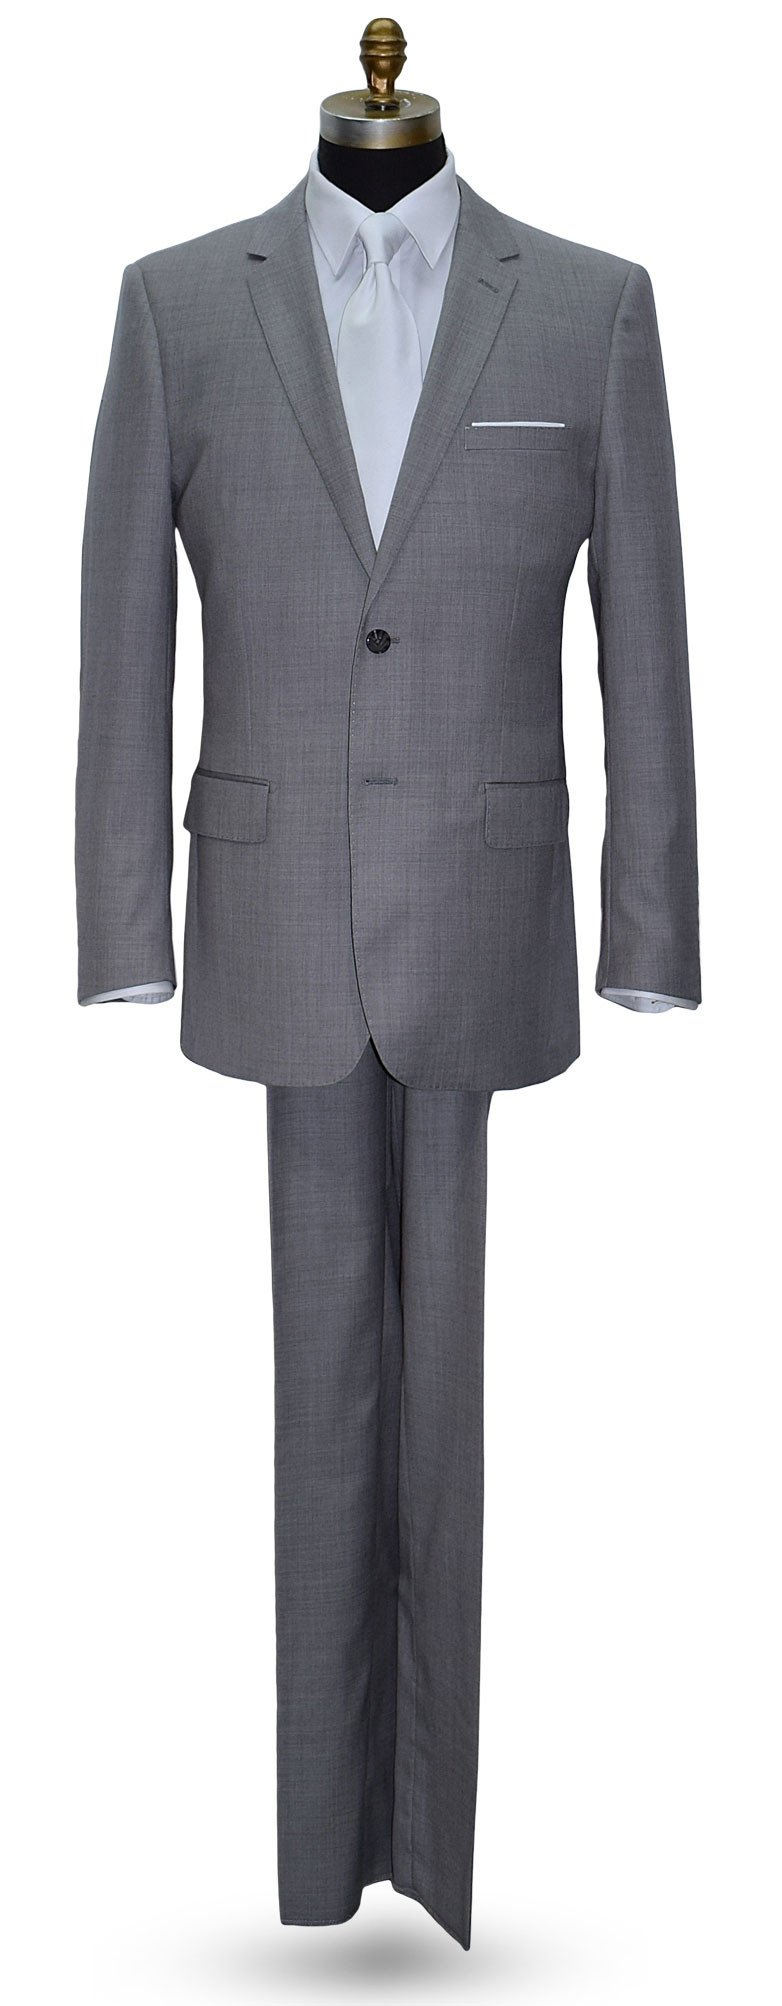 Stone Light Gray Men's Suit -Cashmere and Super Fine Wool